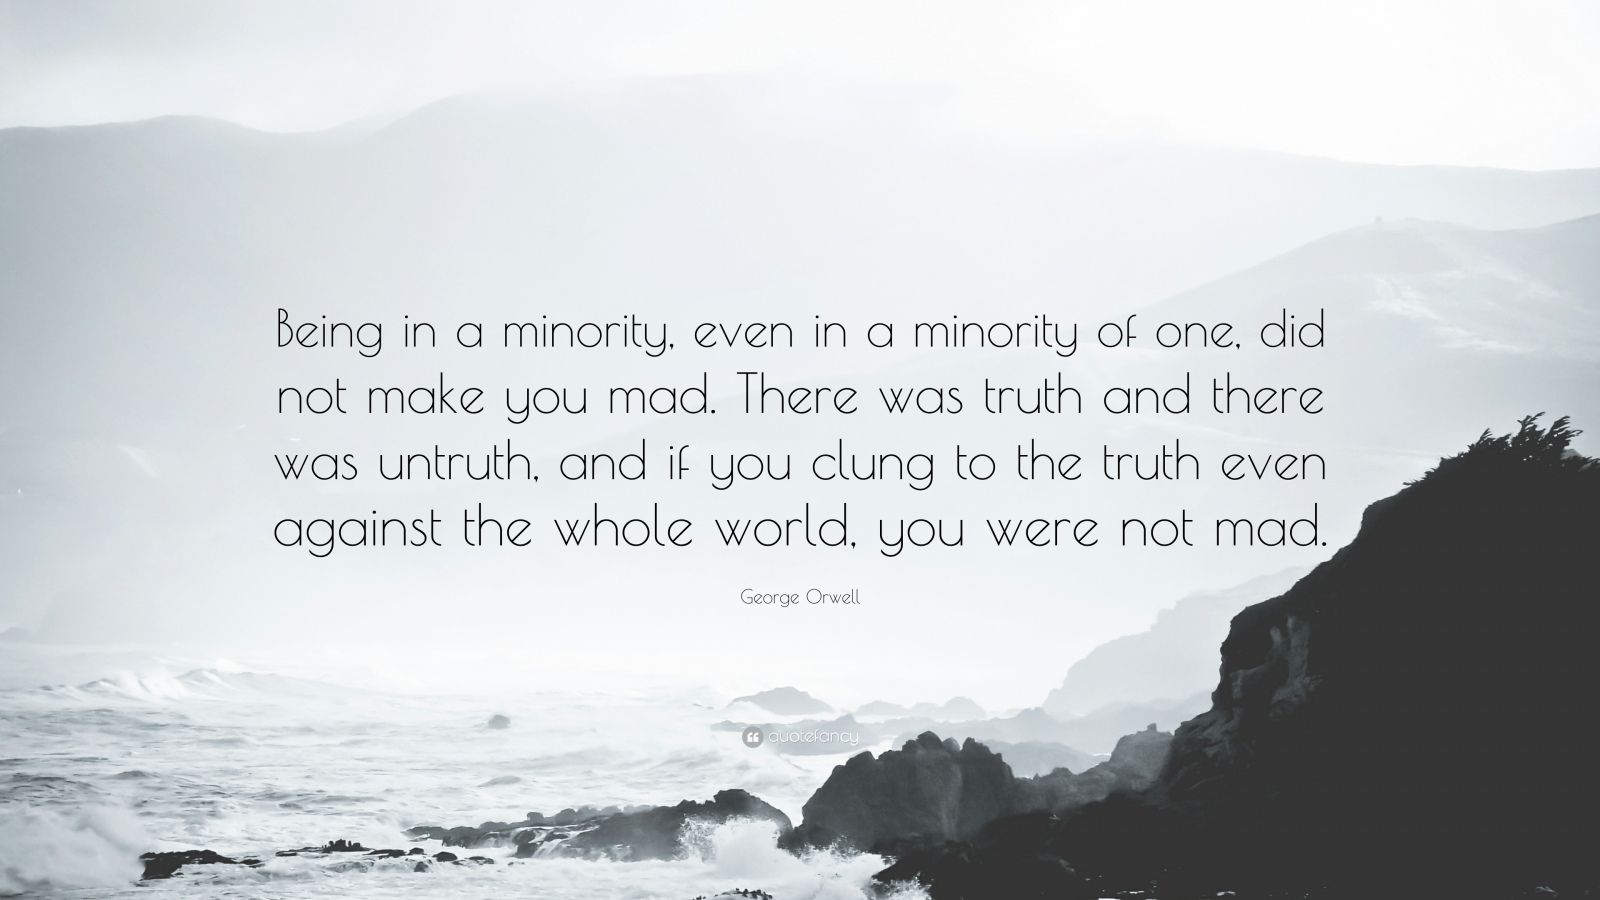 "George Orwell Quote: ""Being in a minority, even in a minority of one, did not make you mad. There was truth and there was untruth, and if you clung to the truth even against the whole world, you were not mad."""